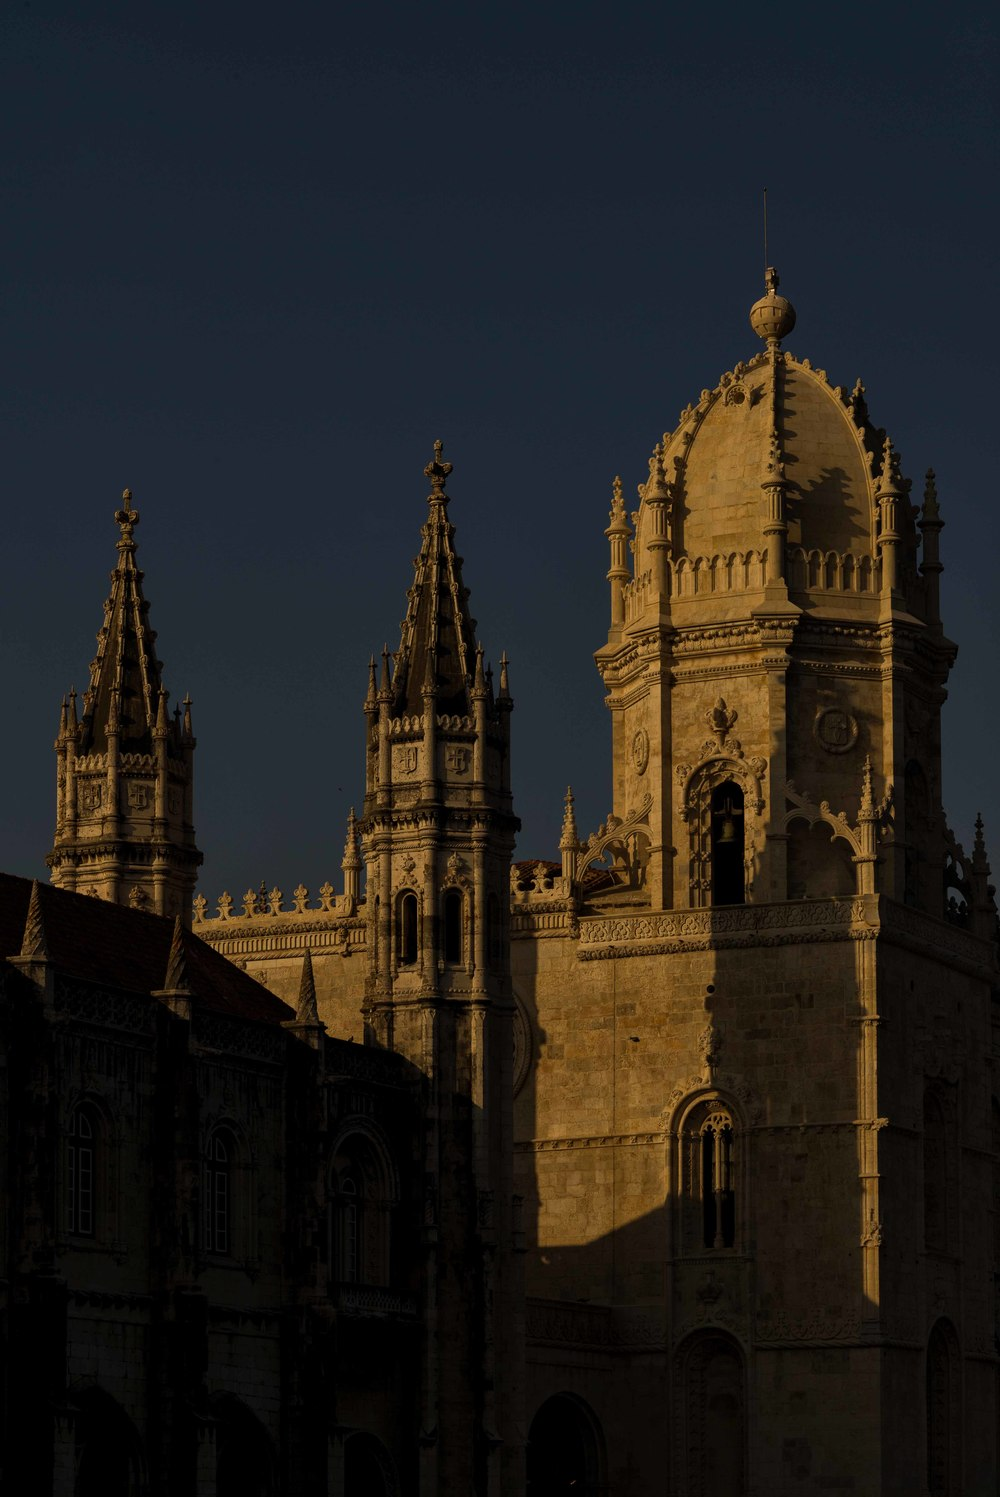 L1007869_sRGB-CO_Relative_Jerónimos Monastery_at Sunset.jpg